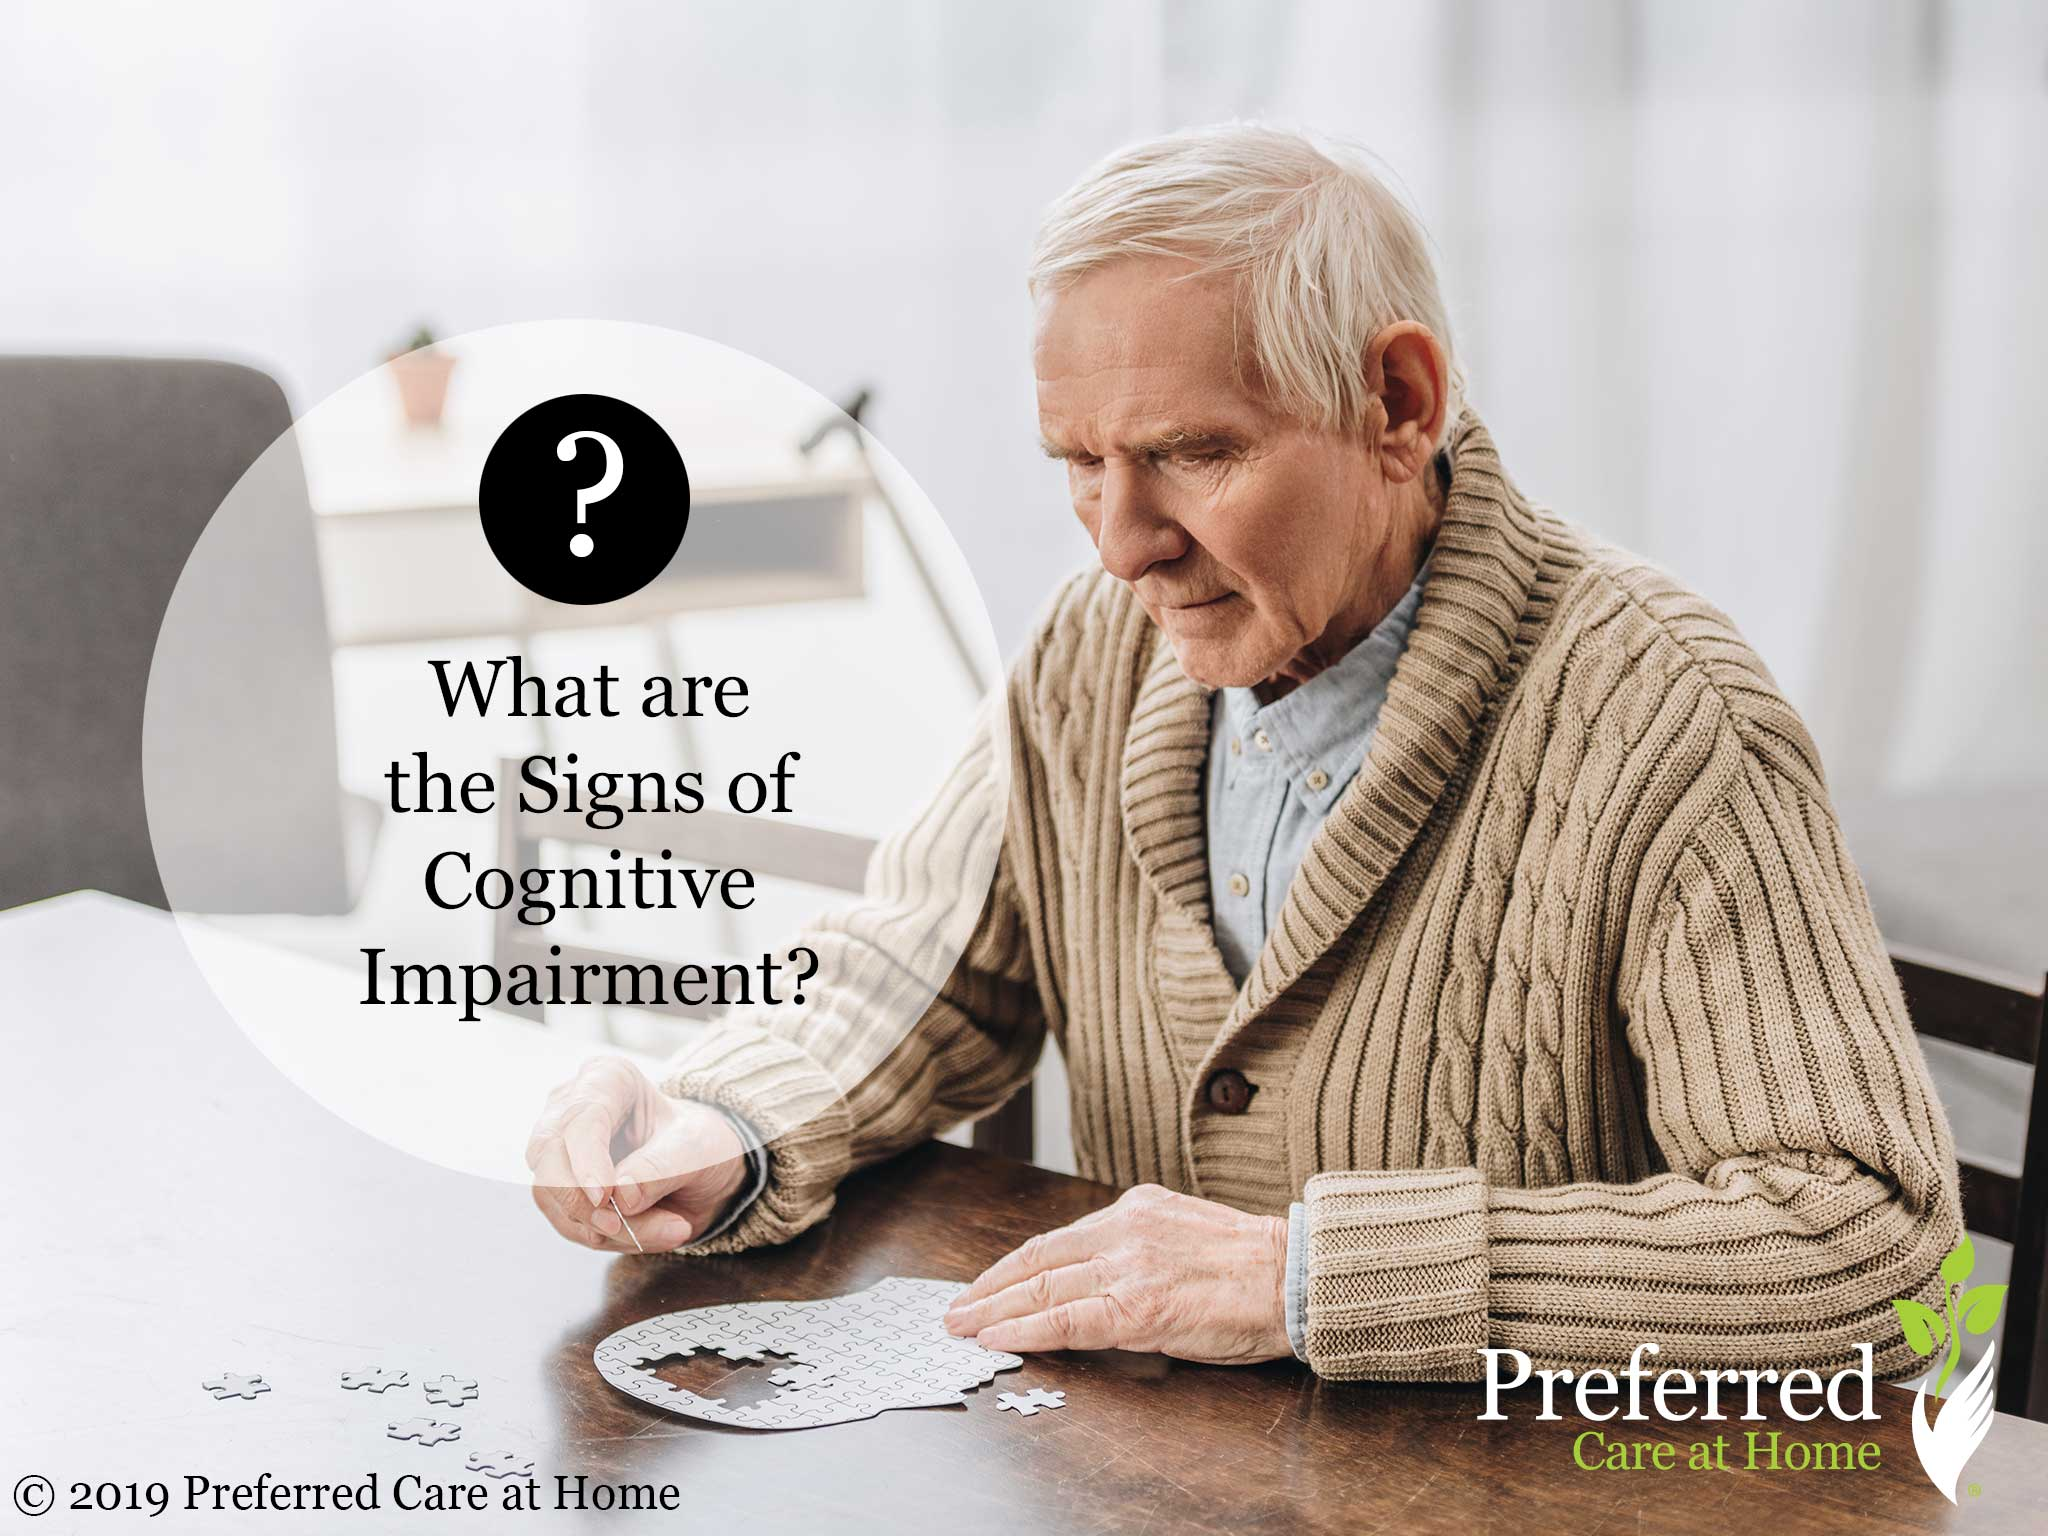 What are the Signs of Cognitive Impairment?